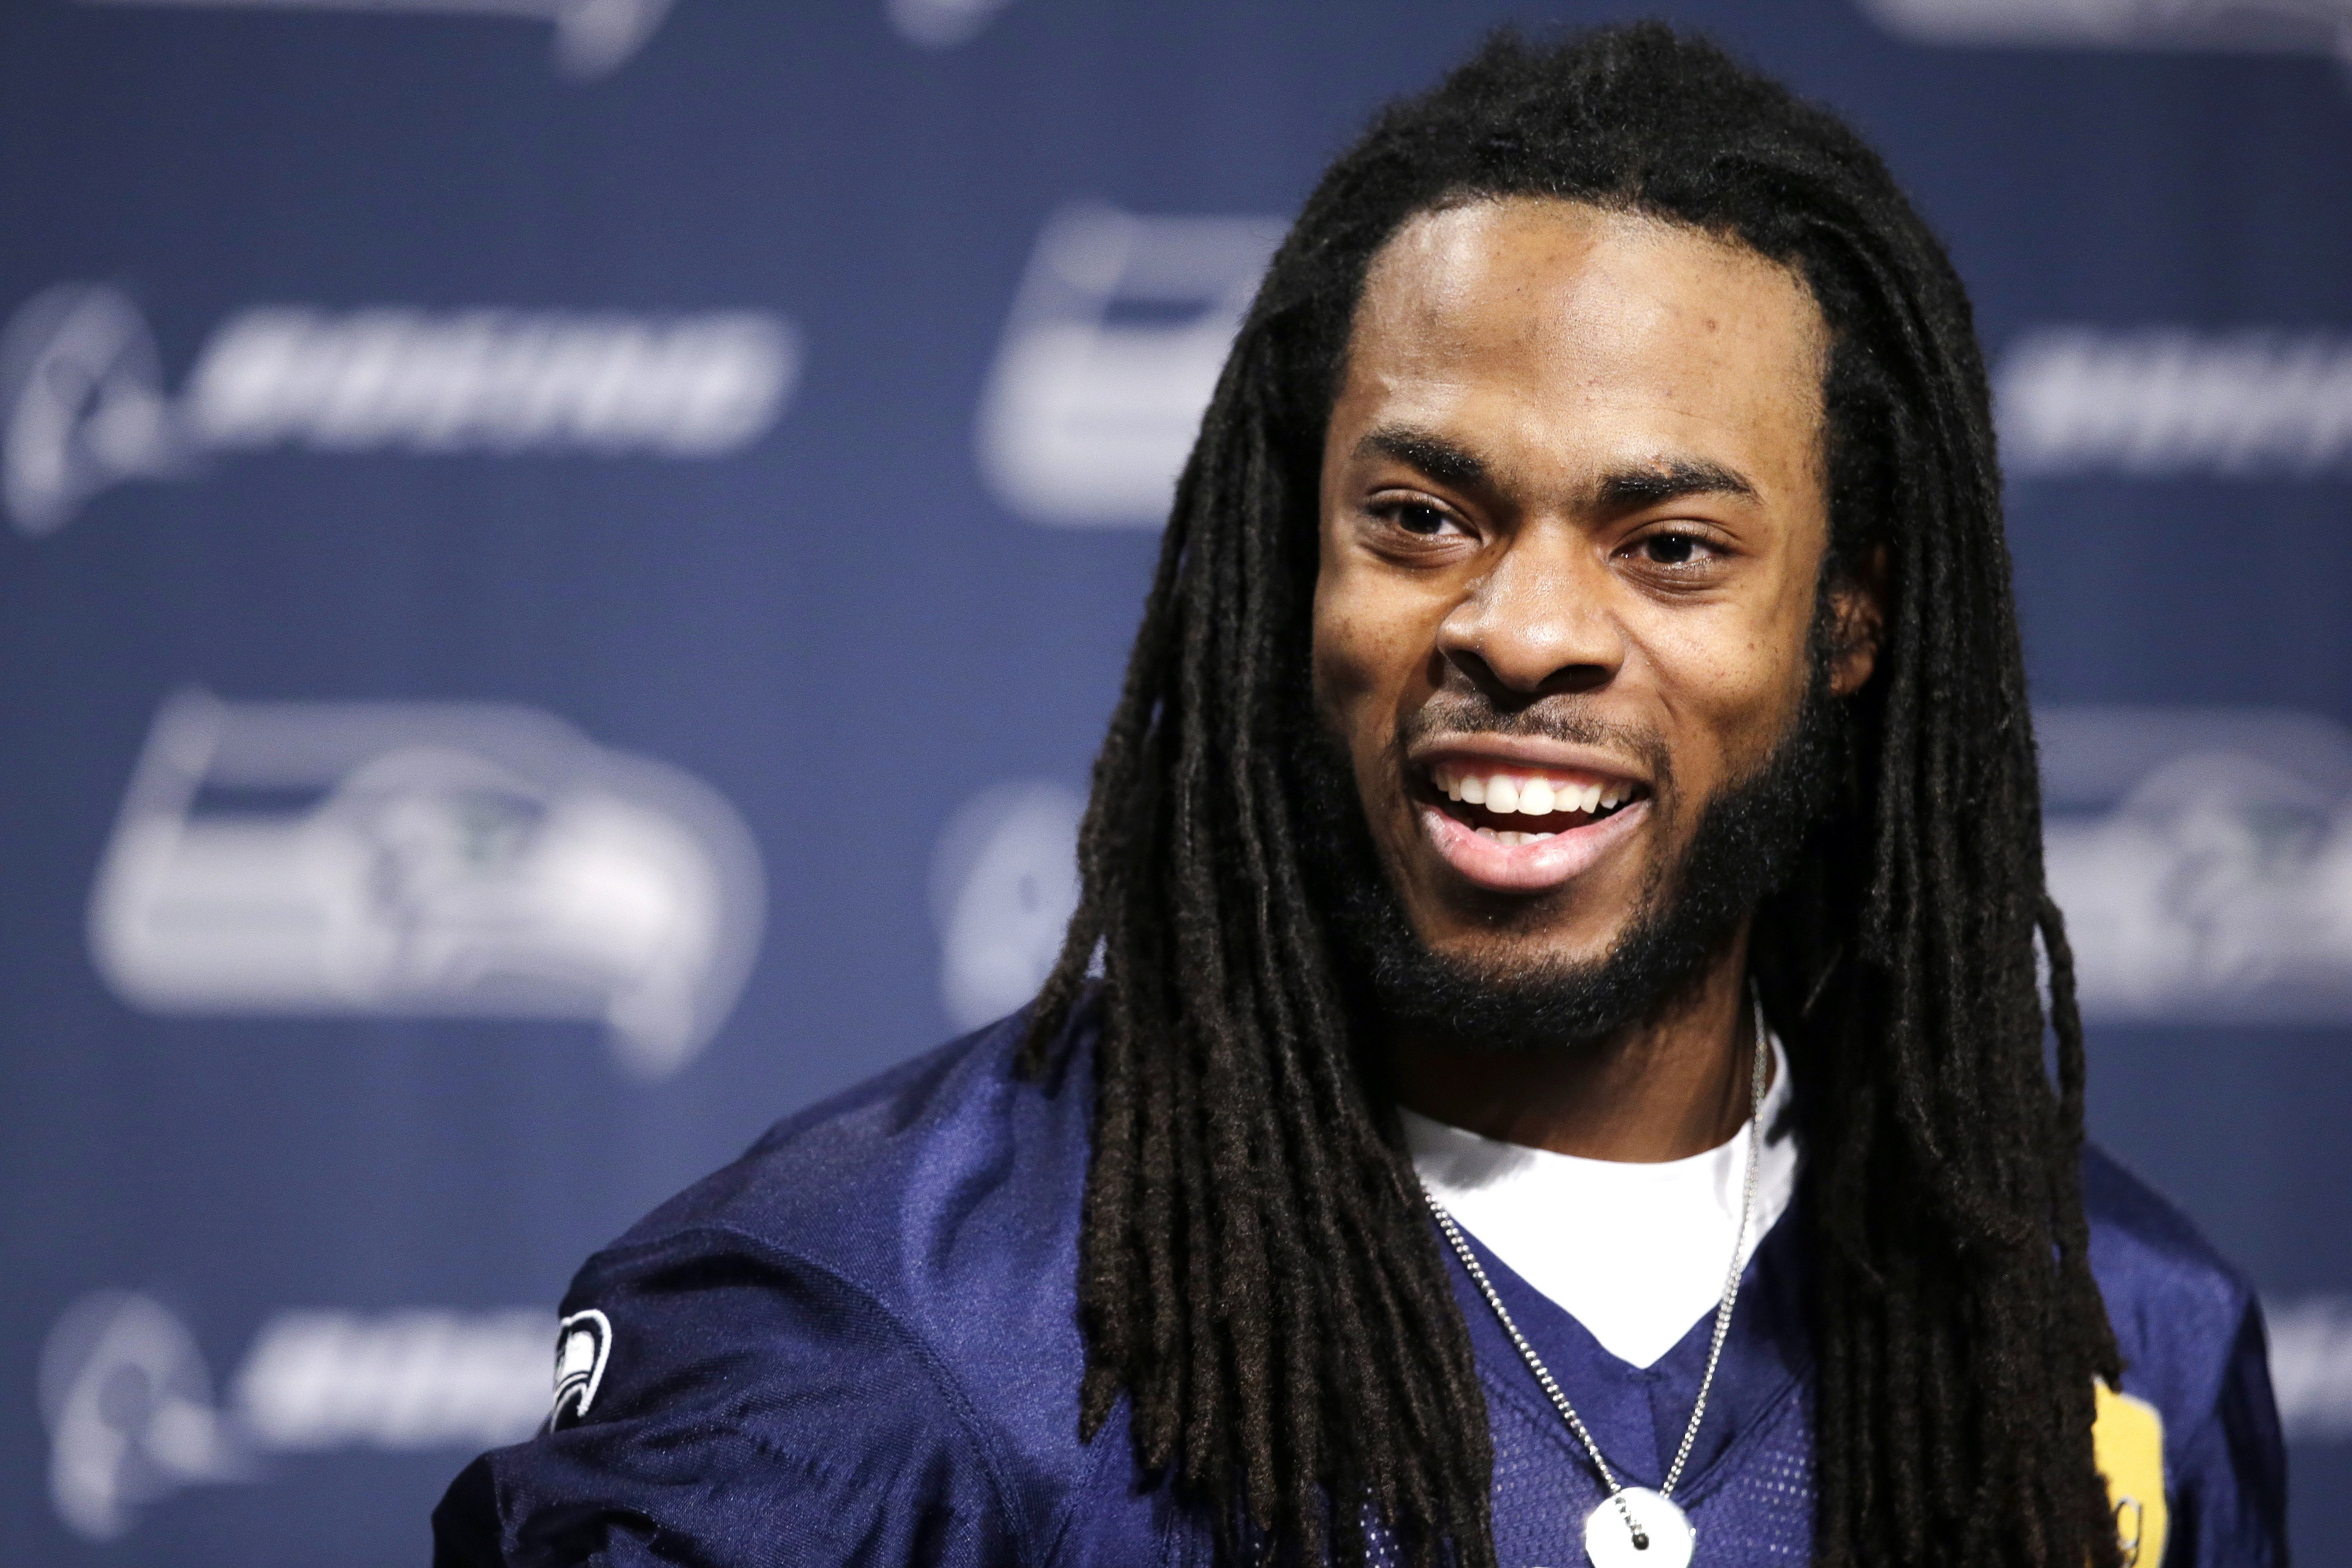 Seattle Seahawks' Richard Sherman speaks at an NFL football news conference on Jan. 22, 2014, in Renton, Wash.